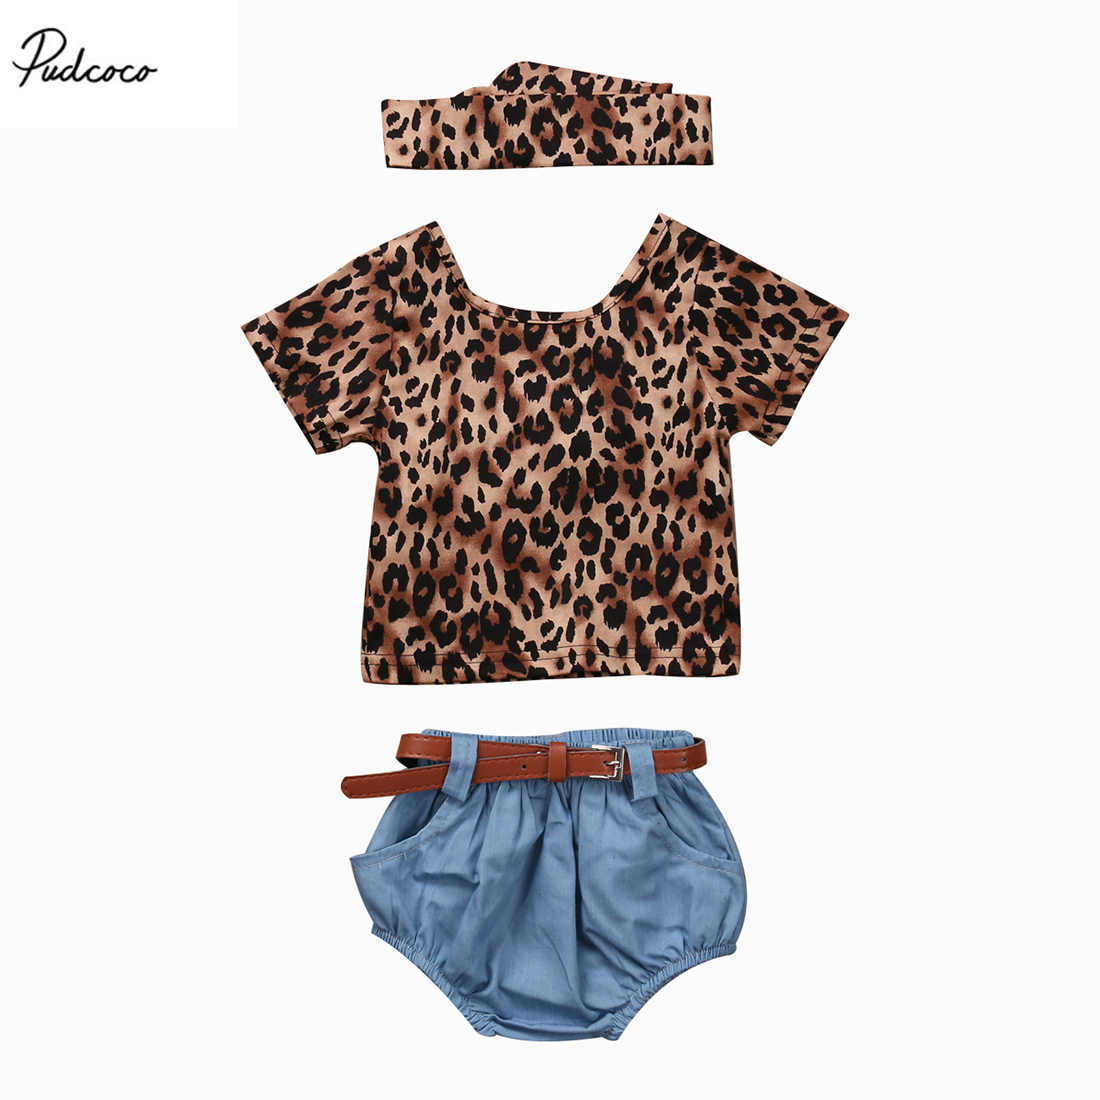 3pcs Newborn Baby Girls Leopard Short Sleeves T-Shirt Blue Shorts Headhand 2017 New Summer Clothes Set